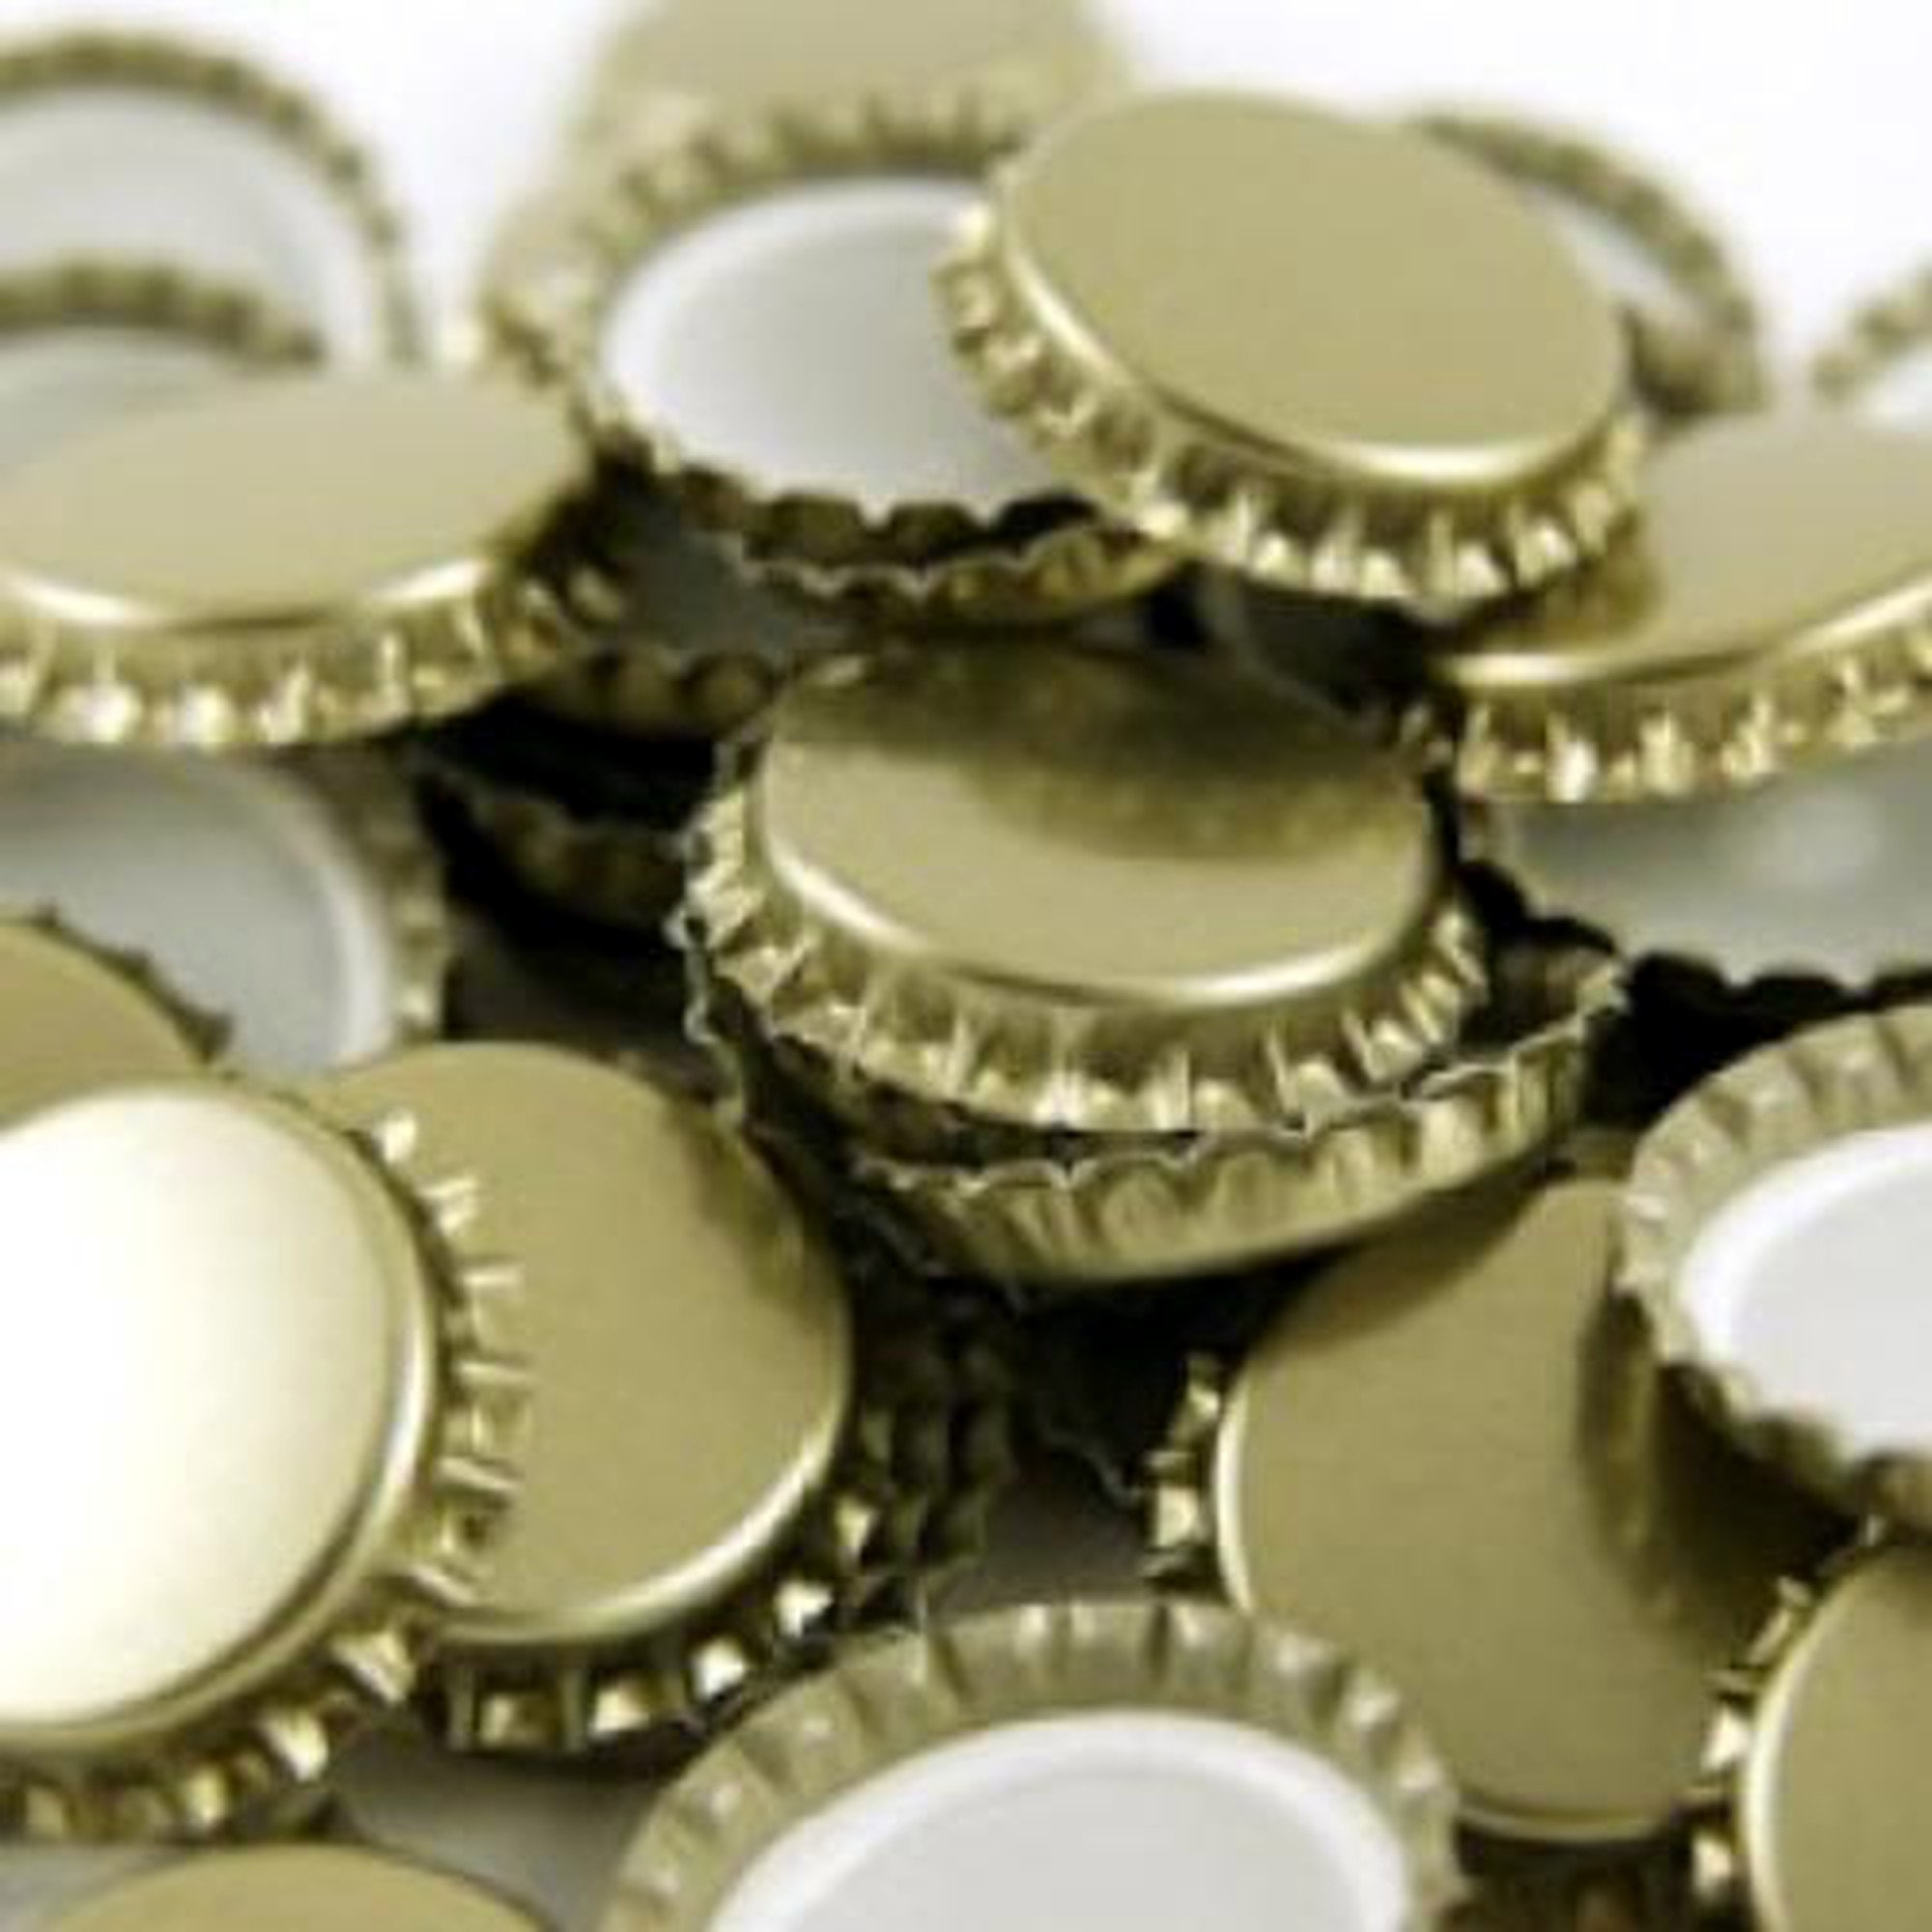 29mm Champagne and European Bottle Caps - 10 Bags of 100